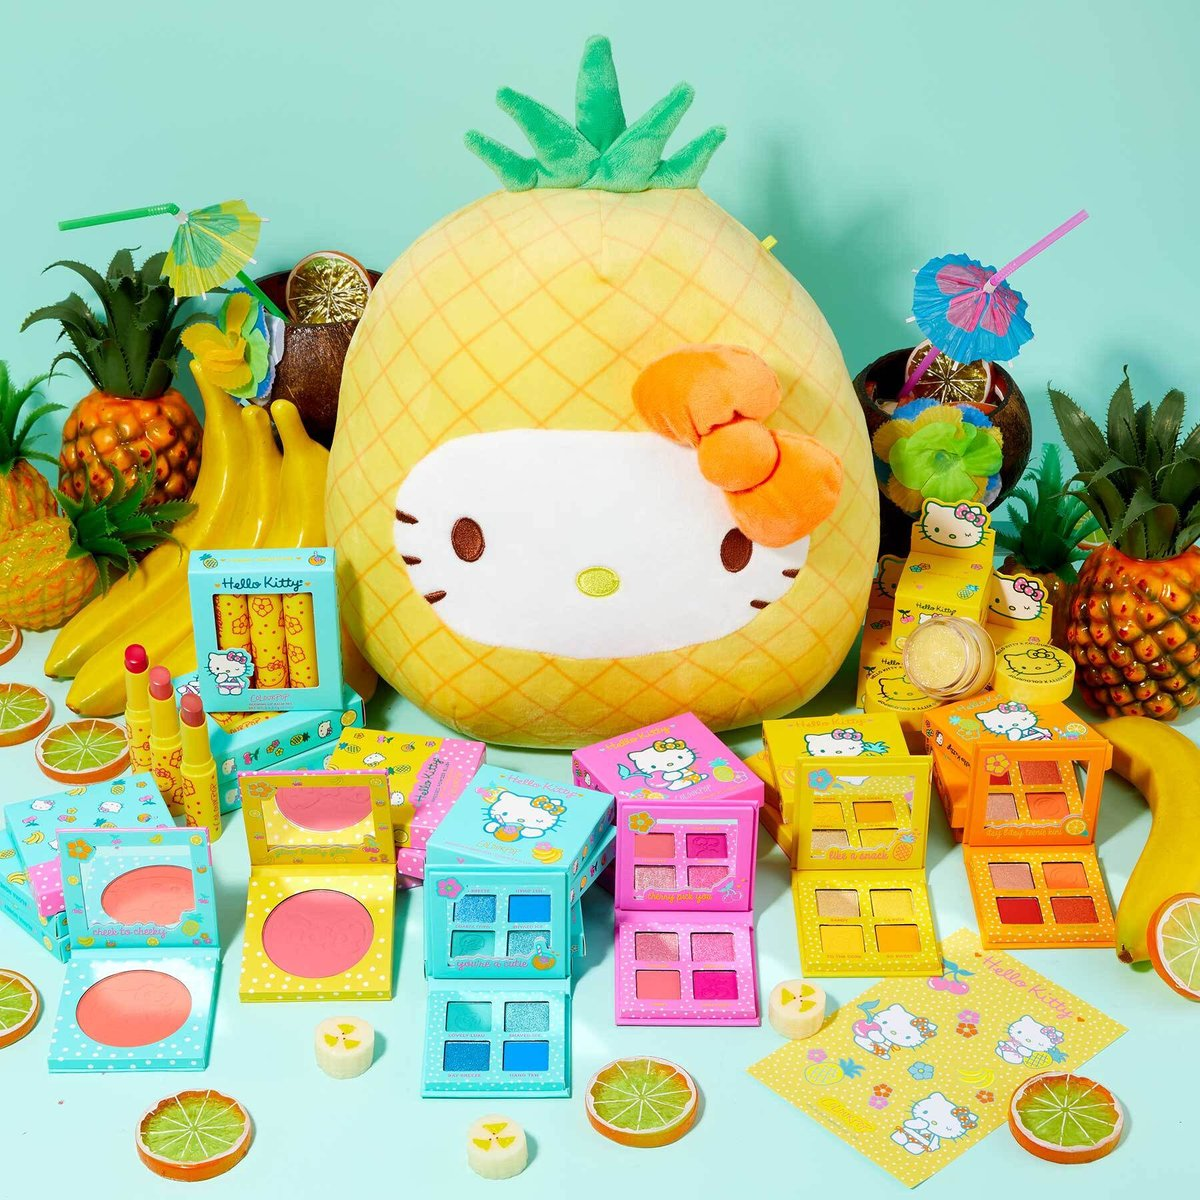 #GIVEAWAY ☀️🍍🌴 5 lucky winners will receive the full  Hello Kitty Tropical Escape Collection + Hello Kitty Pineapple Squishmallow!  1. Like & RT 2. Follow @ColourPopco  + @hellokitty  See the link in our bio for complete sweepstakes rules. GOOD LUCK! https://t.co/iZGEvrp4V0